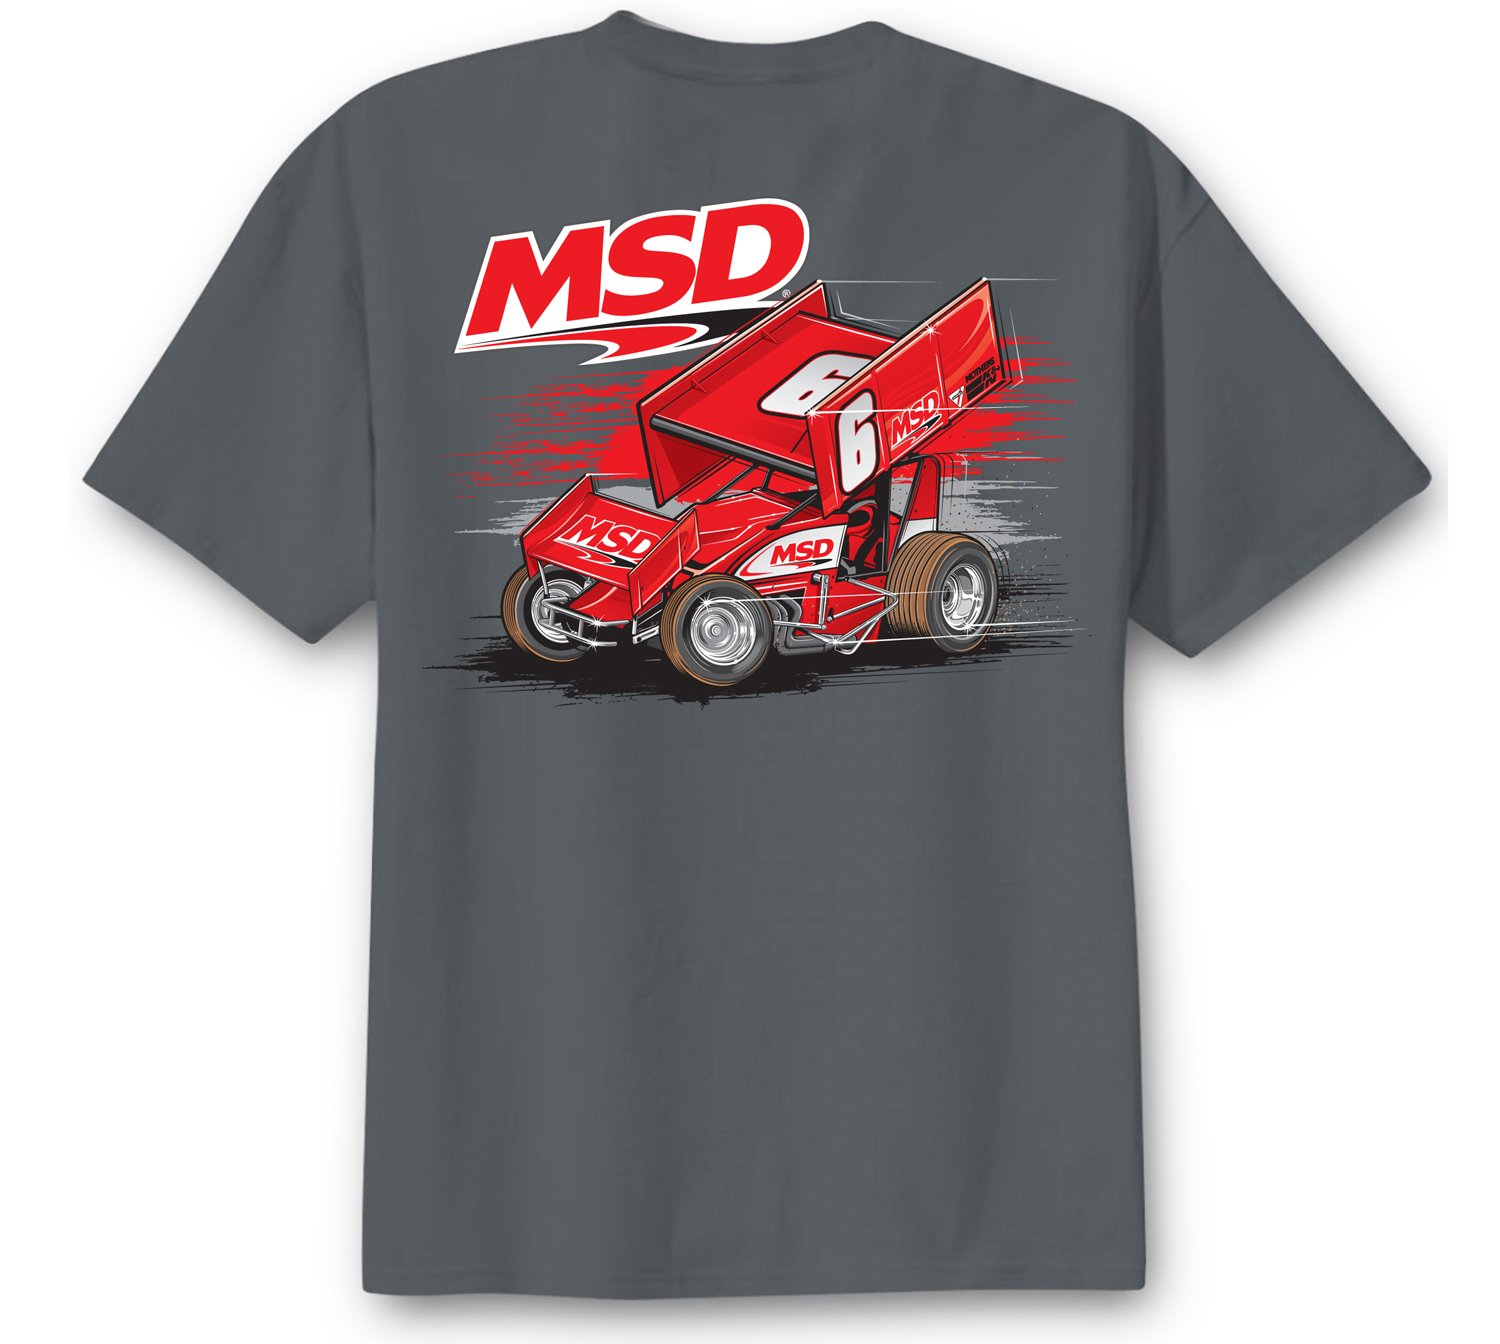 95144 - MSD Sprint Car T-Shirt, Gray, XX-Large Image